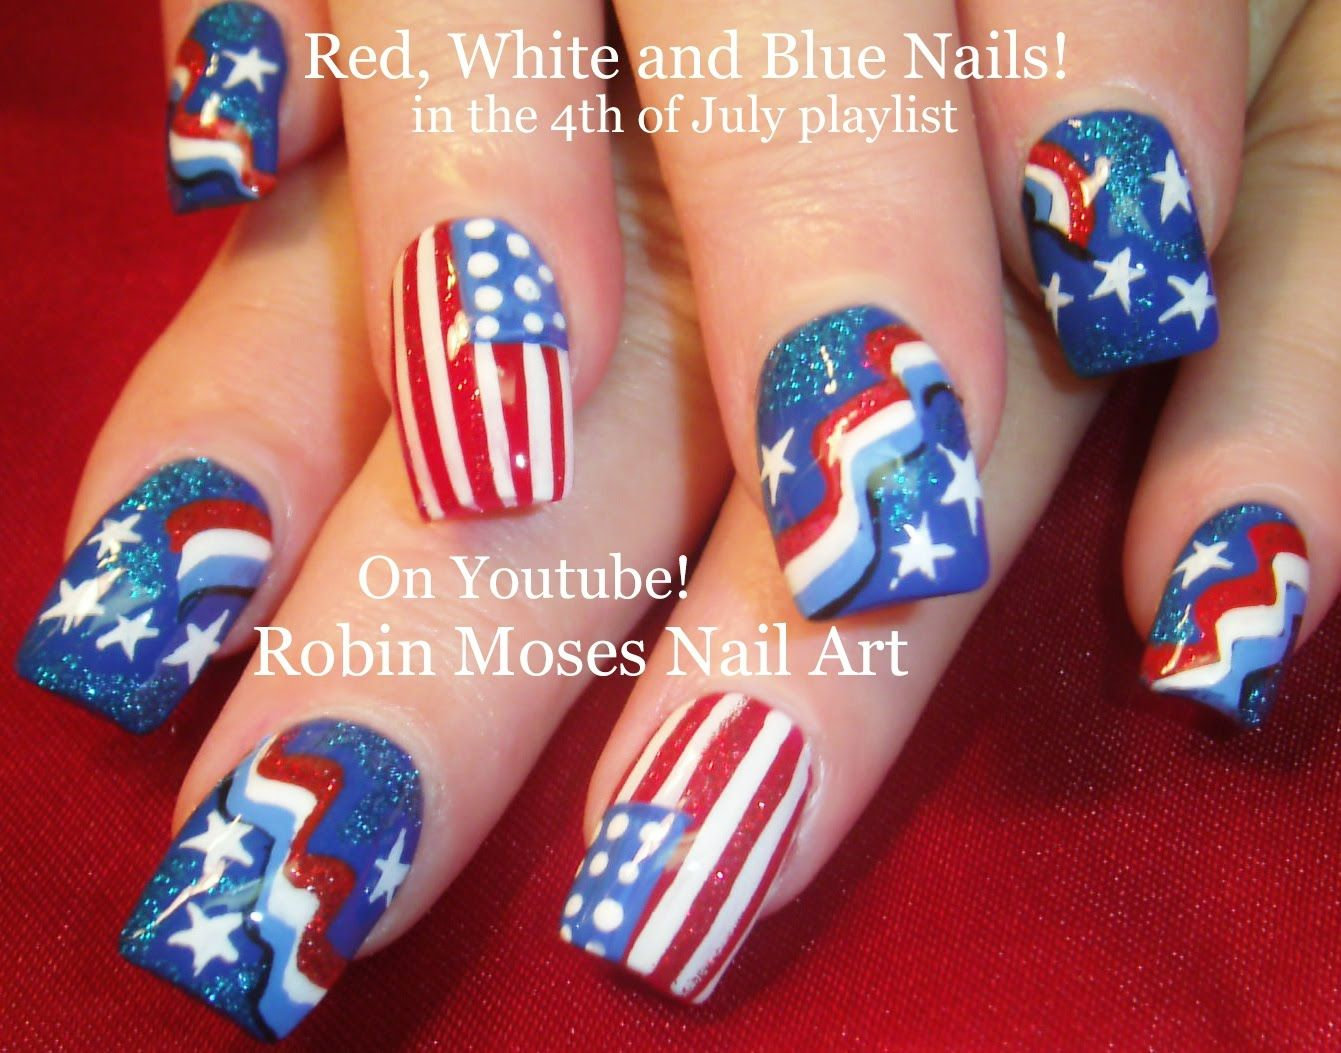 Red white blue nail designs graham reid nail art tutorial diy 4th of july nails red white and blue flag nail prinsesfo Gallery